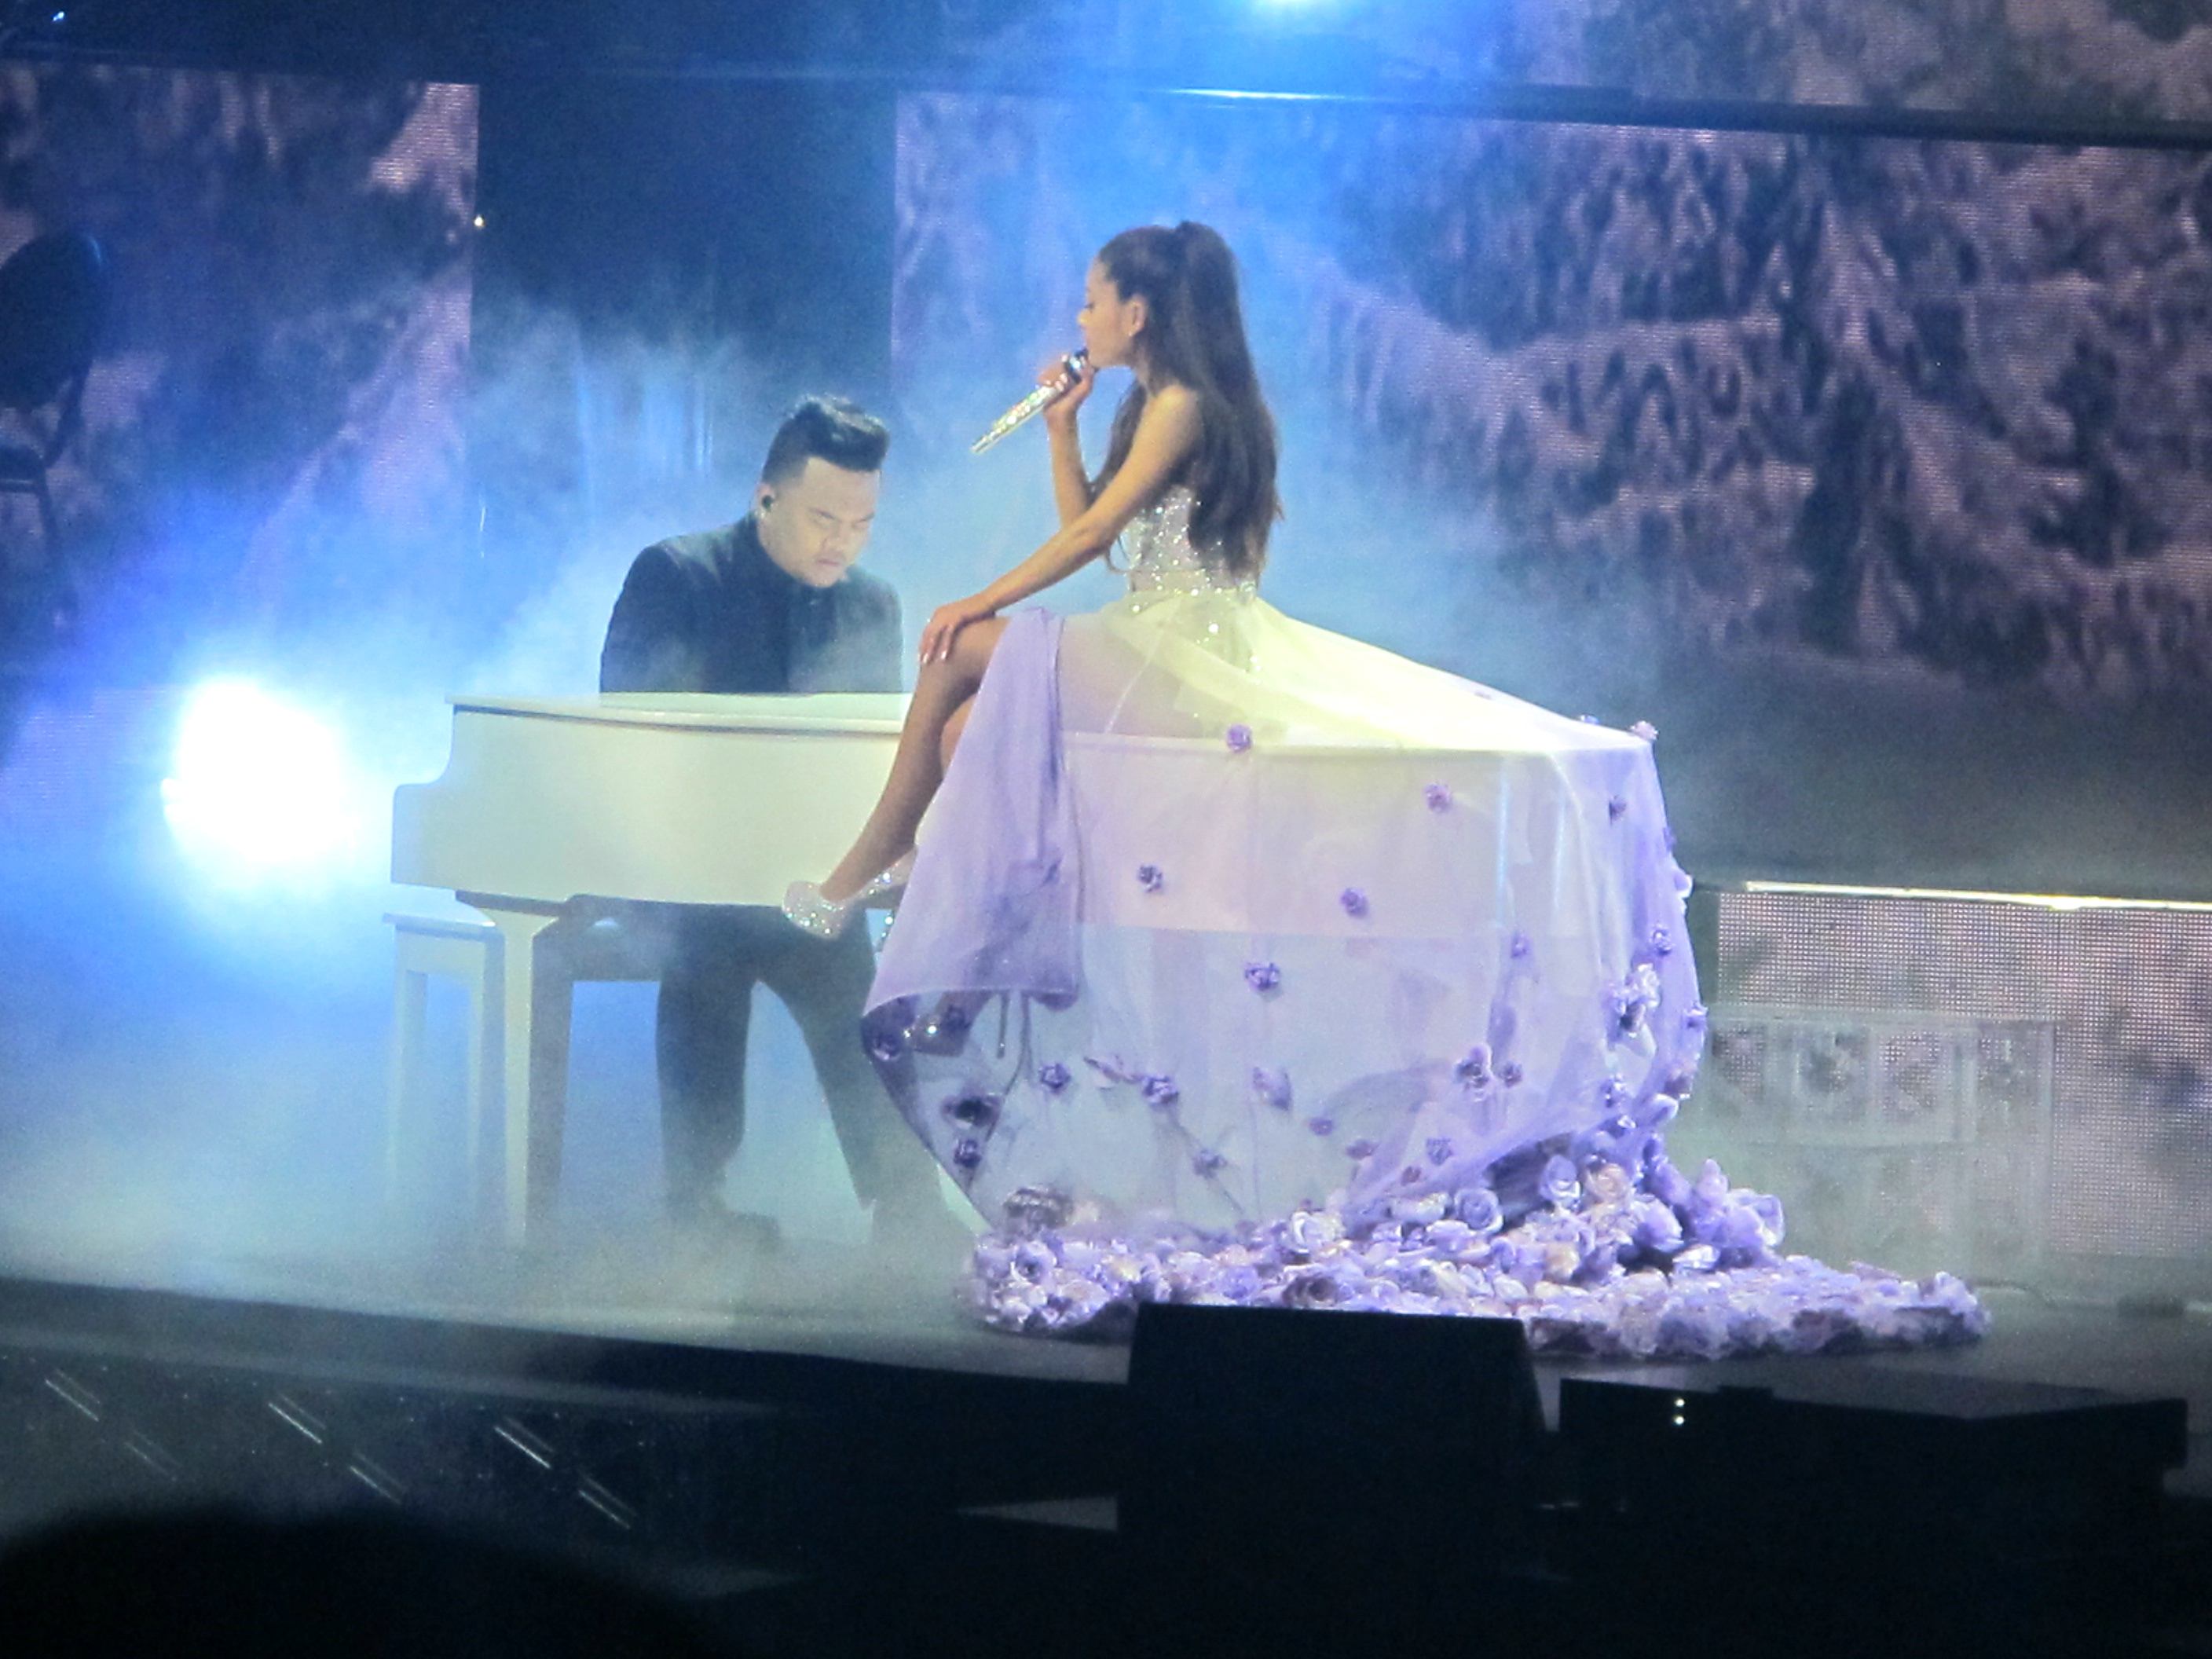 show-ariana-grande-anaheim-california-honeymoon-tour-universal-music